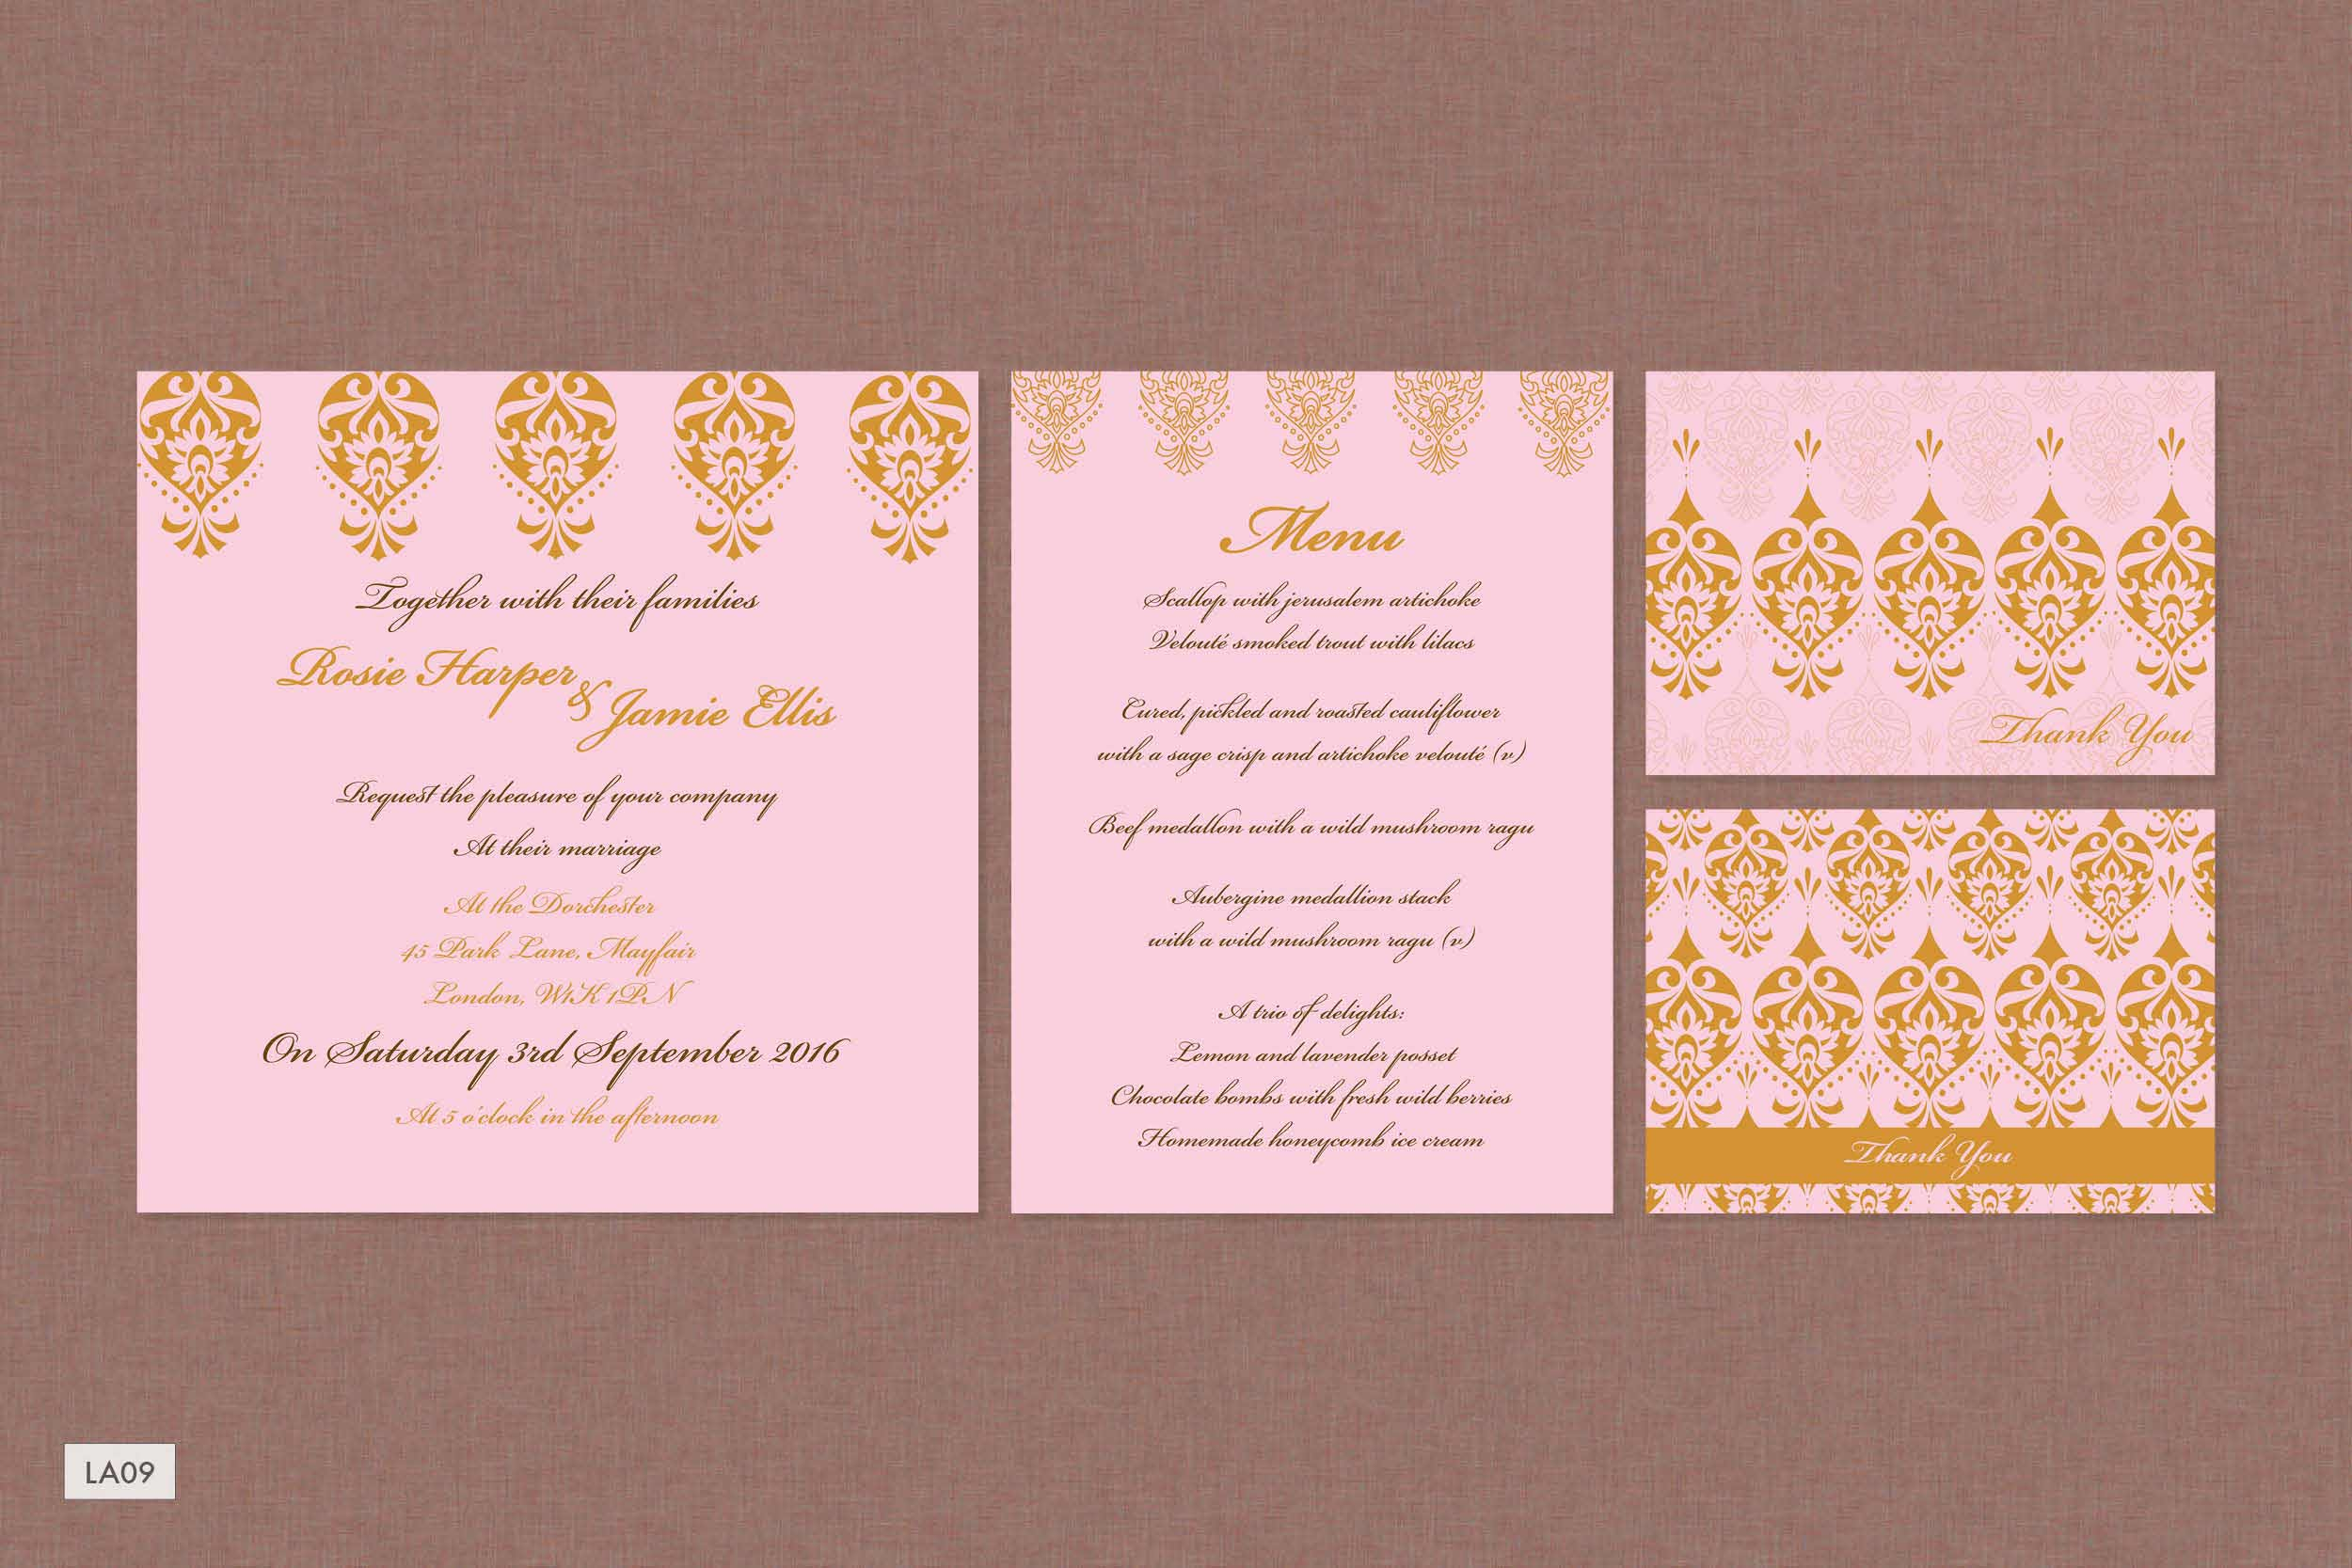 ananya-wedding-stationery-lace31.jpg